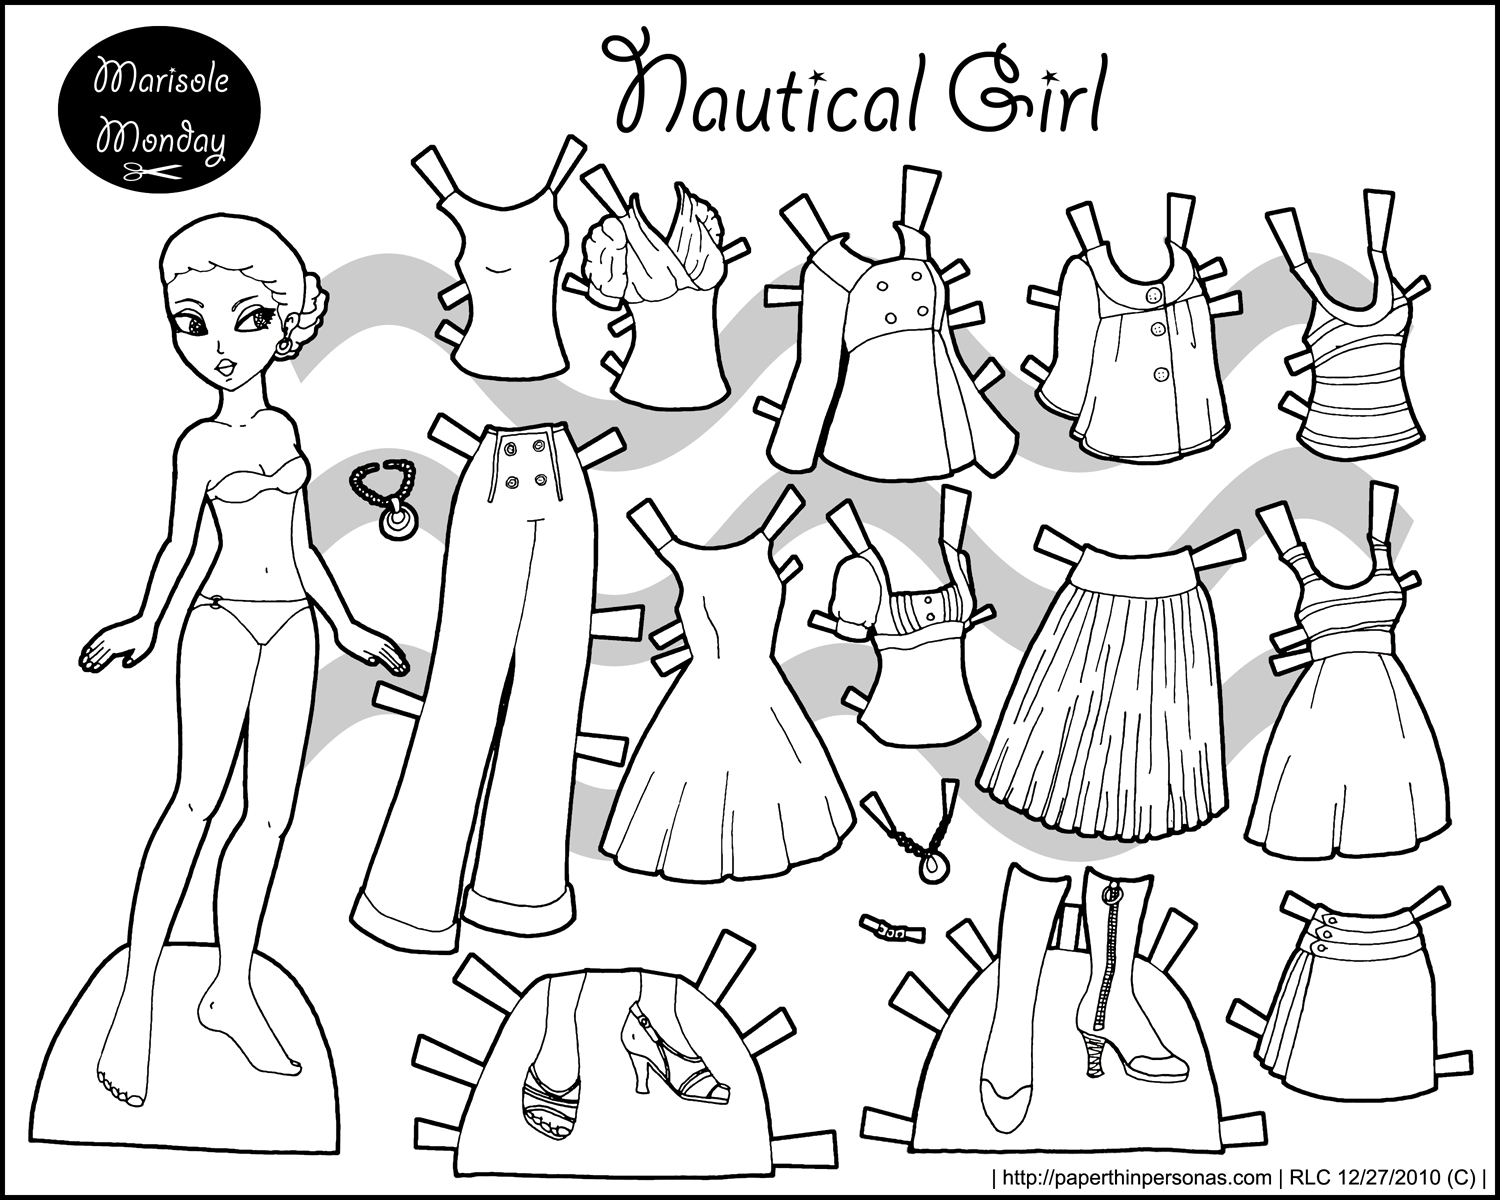 Thumbnail link image printable paper doll | Paperdolls✂ | Pinterest ...